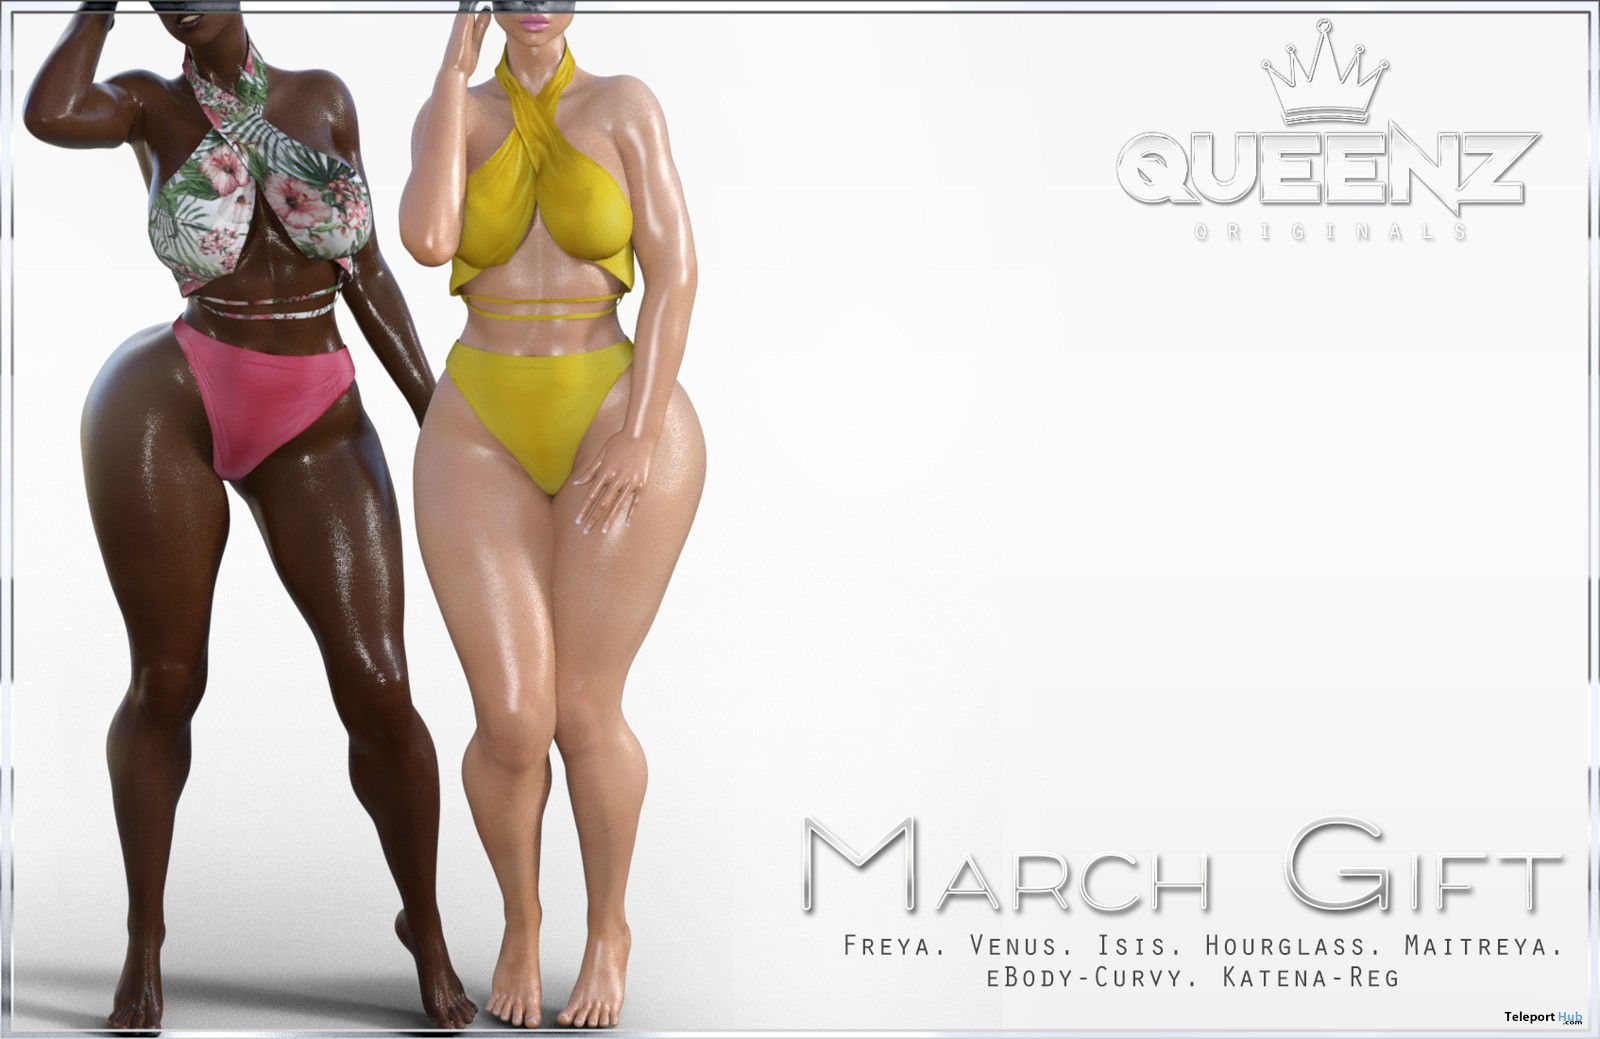 Top & Panties March 2018 Group Gift by QUEENZ - Teleport Hub - teleporthub.com